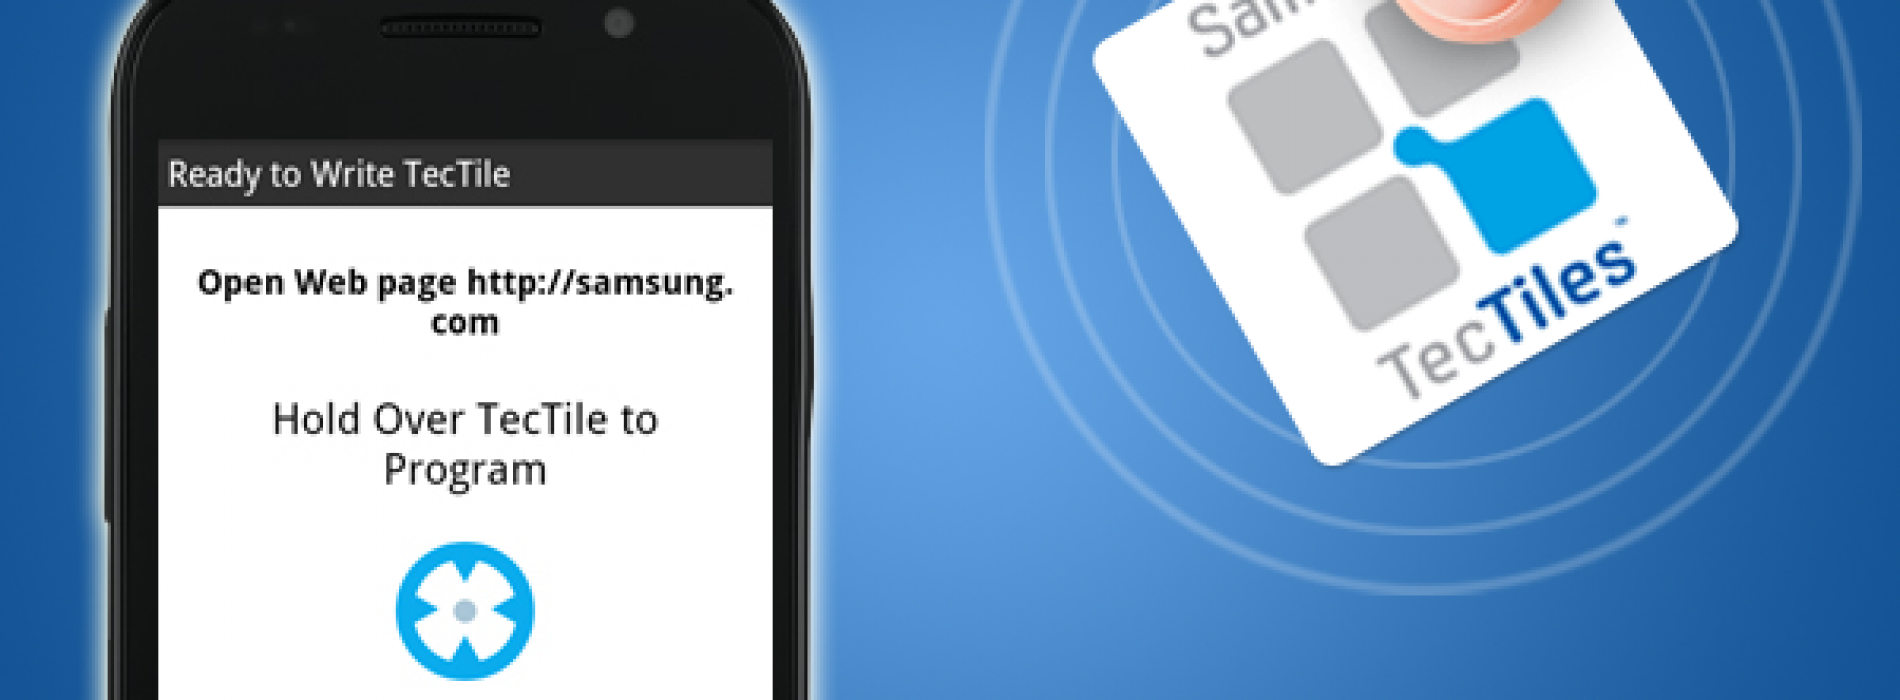 Samsung enhances TecTile features with 3.0 update